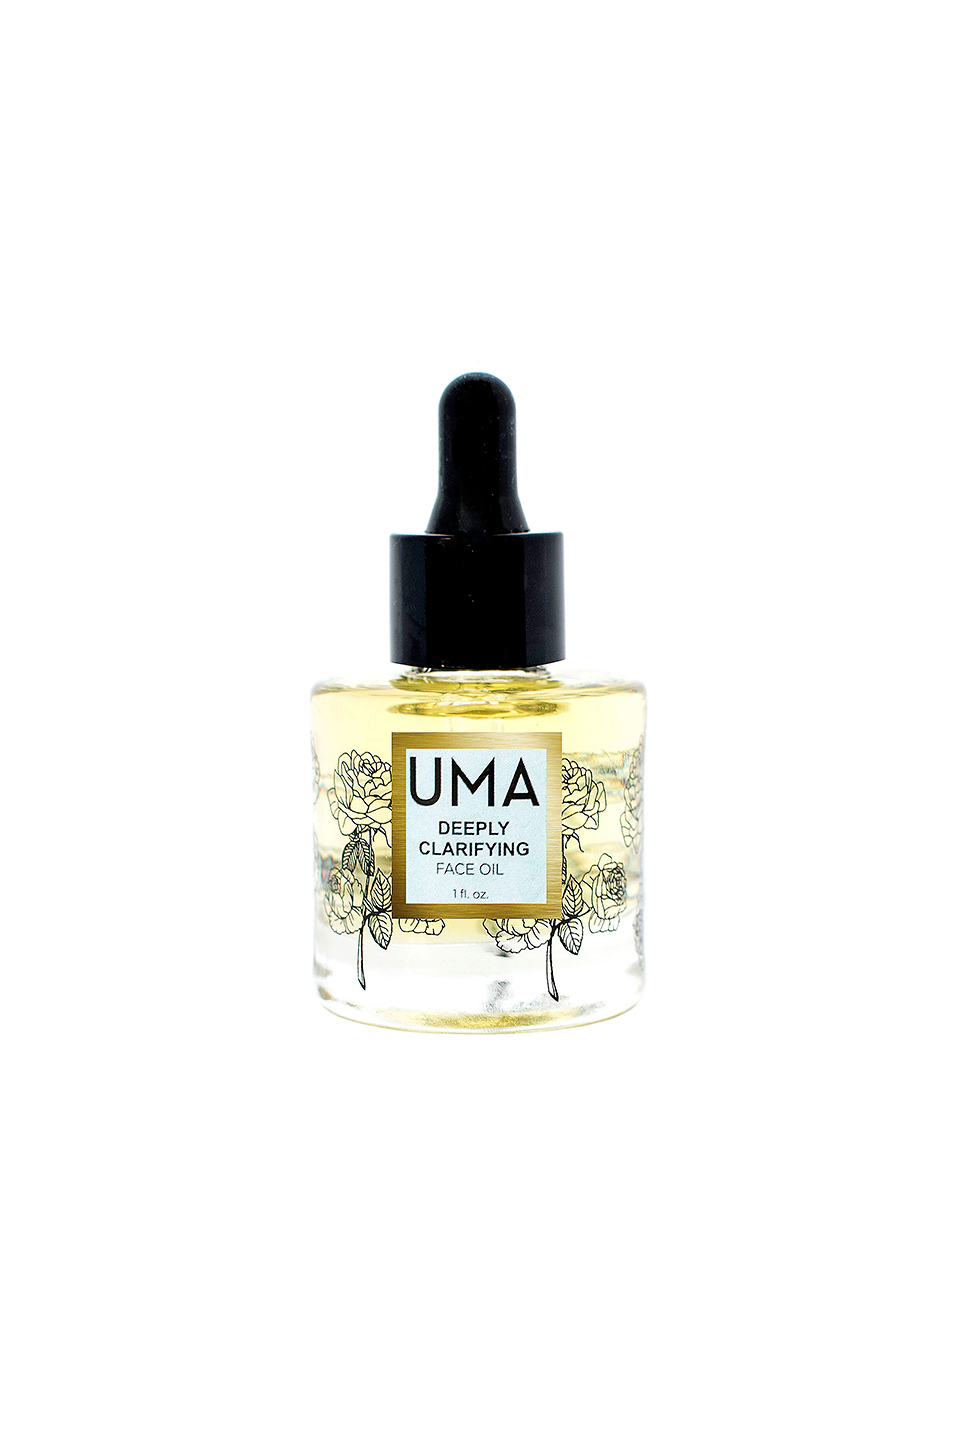 UMA Deeply Clarifying Face Oil in